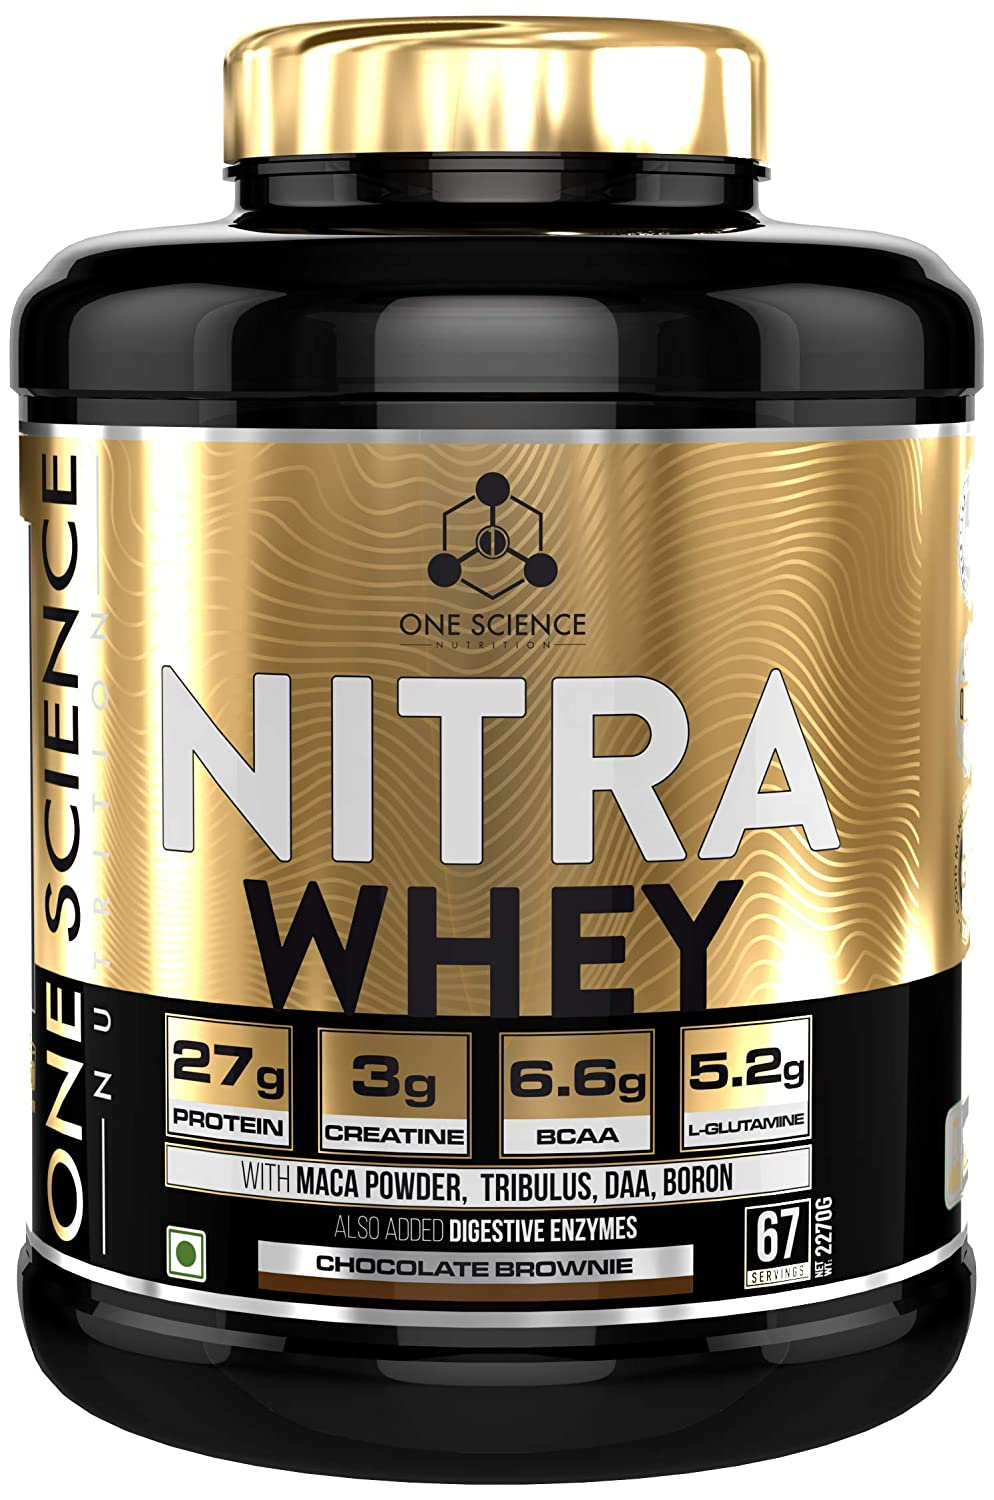 One Science Nutrition Nitra Whey 5lbs - Chocolate Brownie